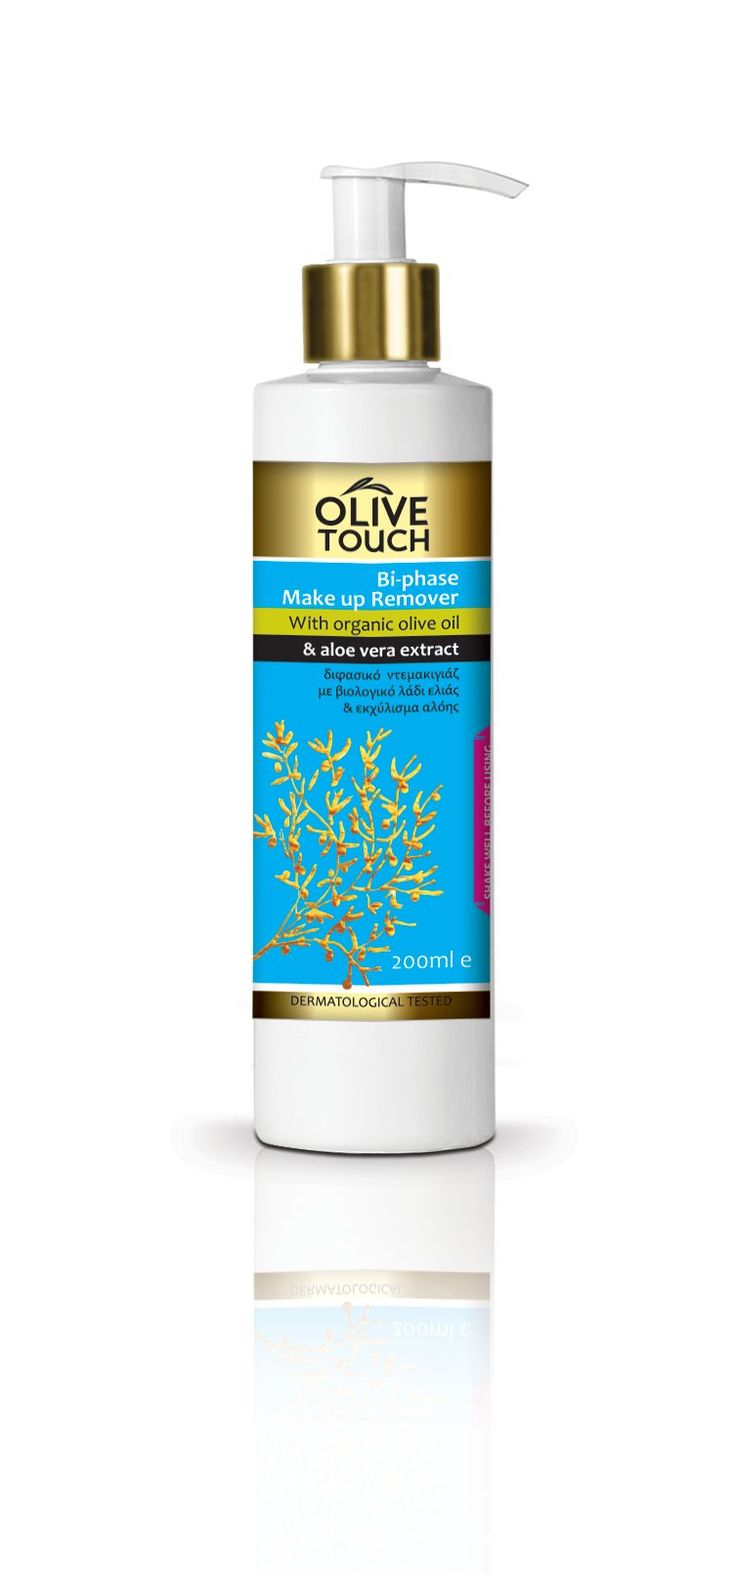 Bi-phase Make Up Remover Olive Touch!